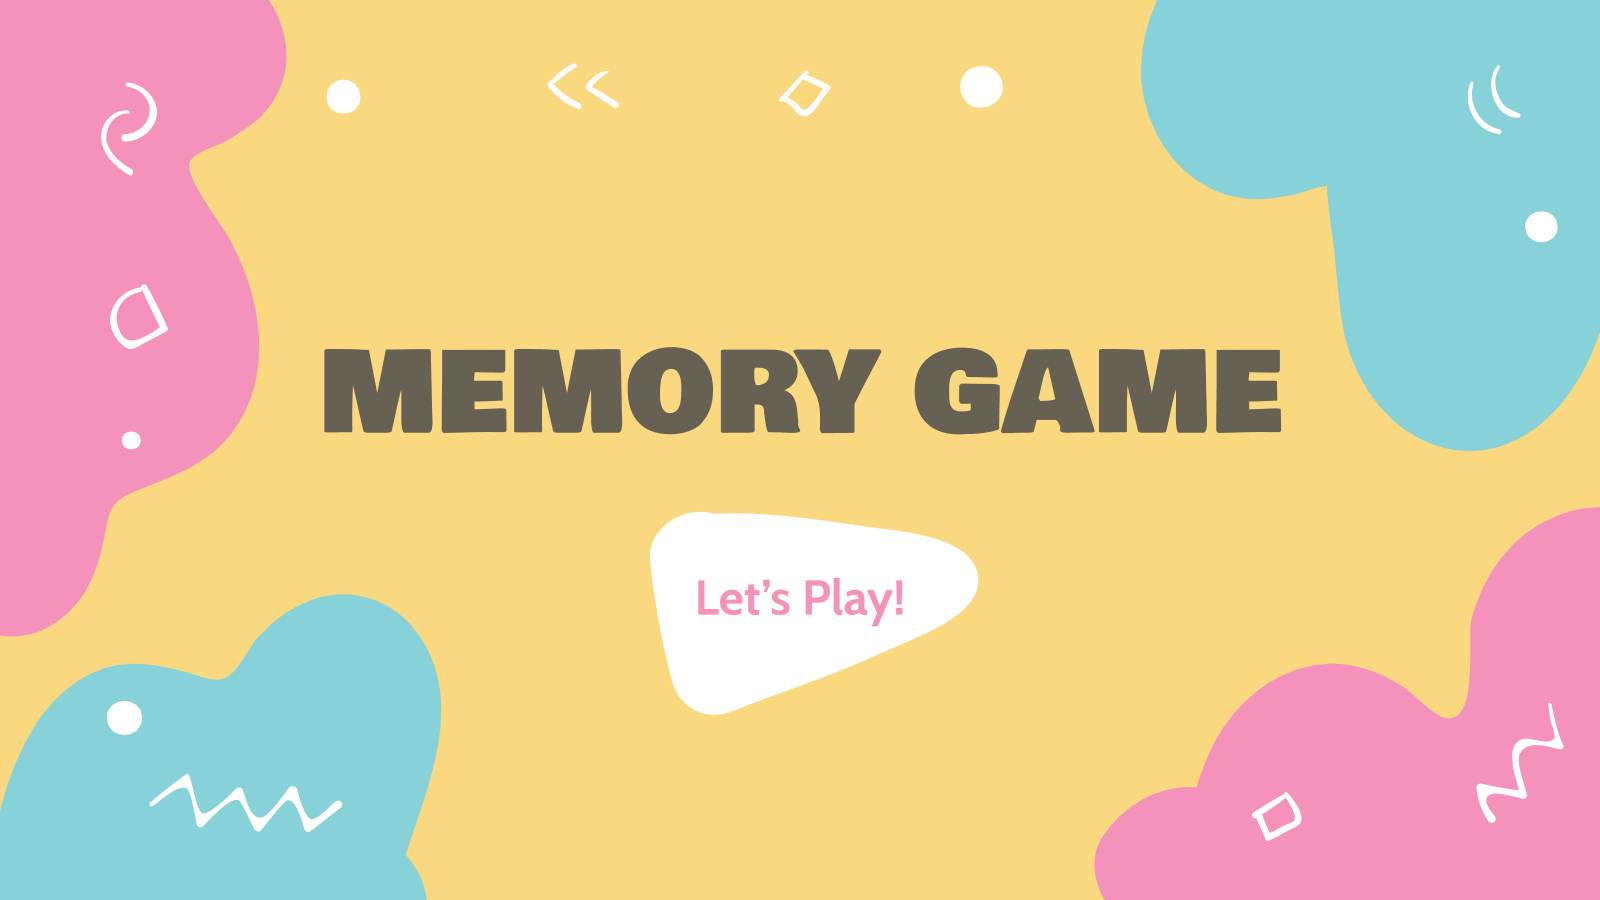 Memory Game presentation template